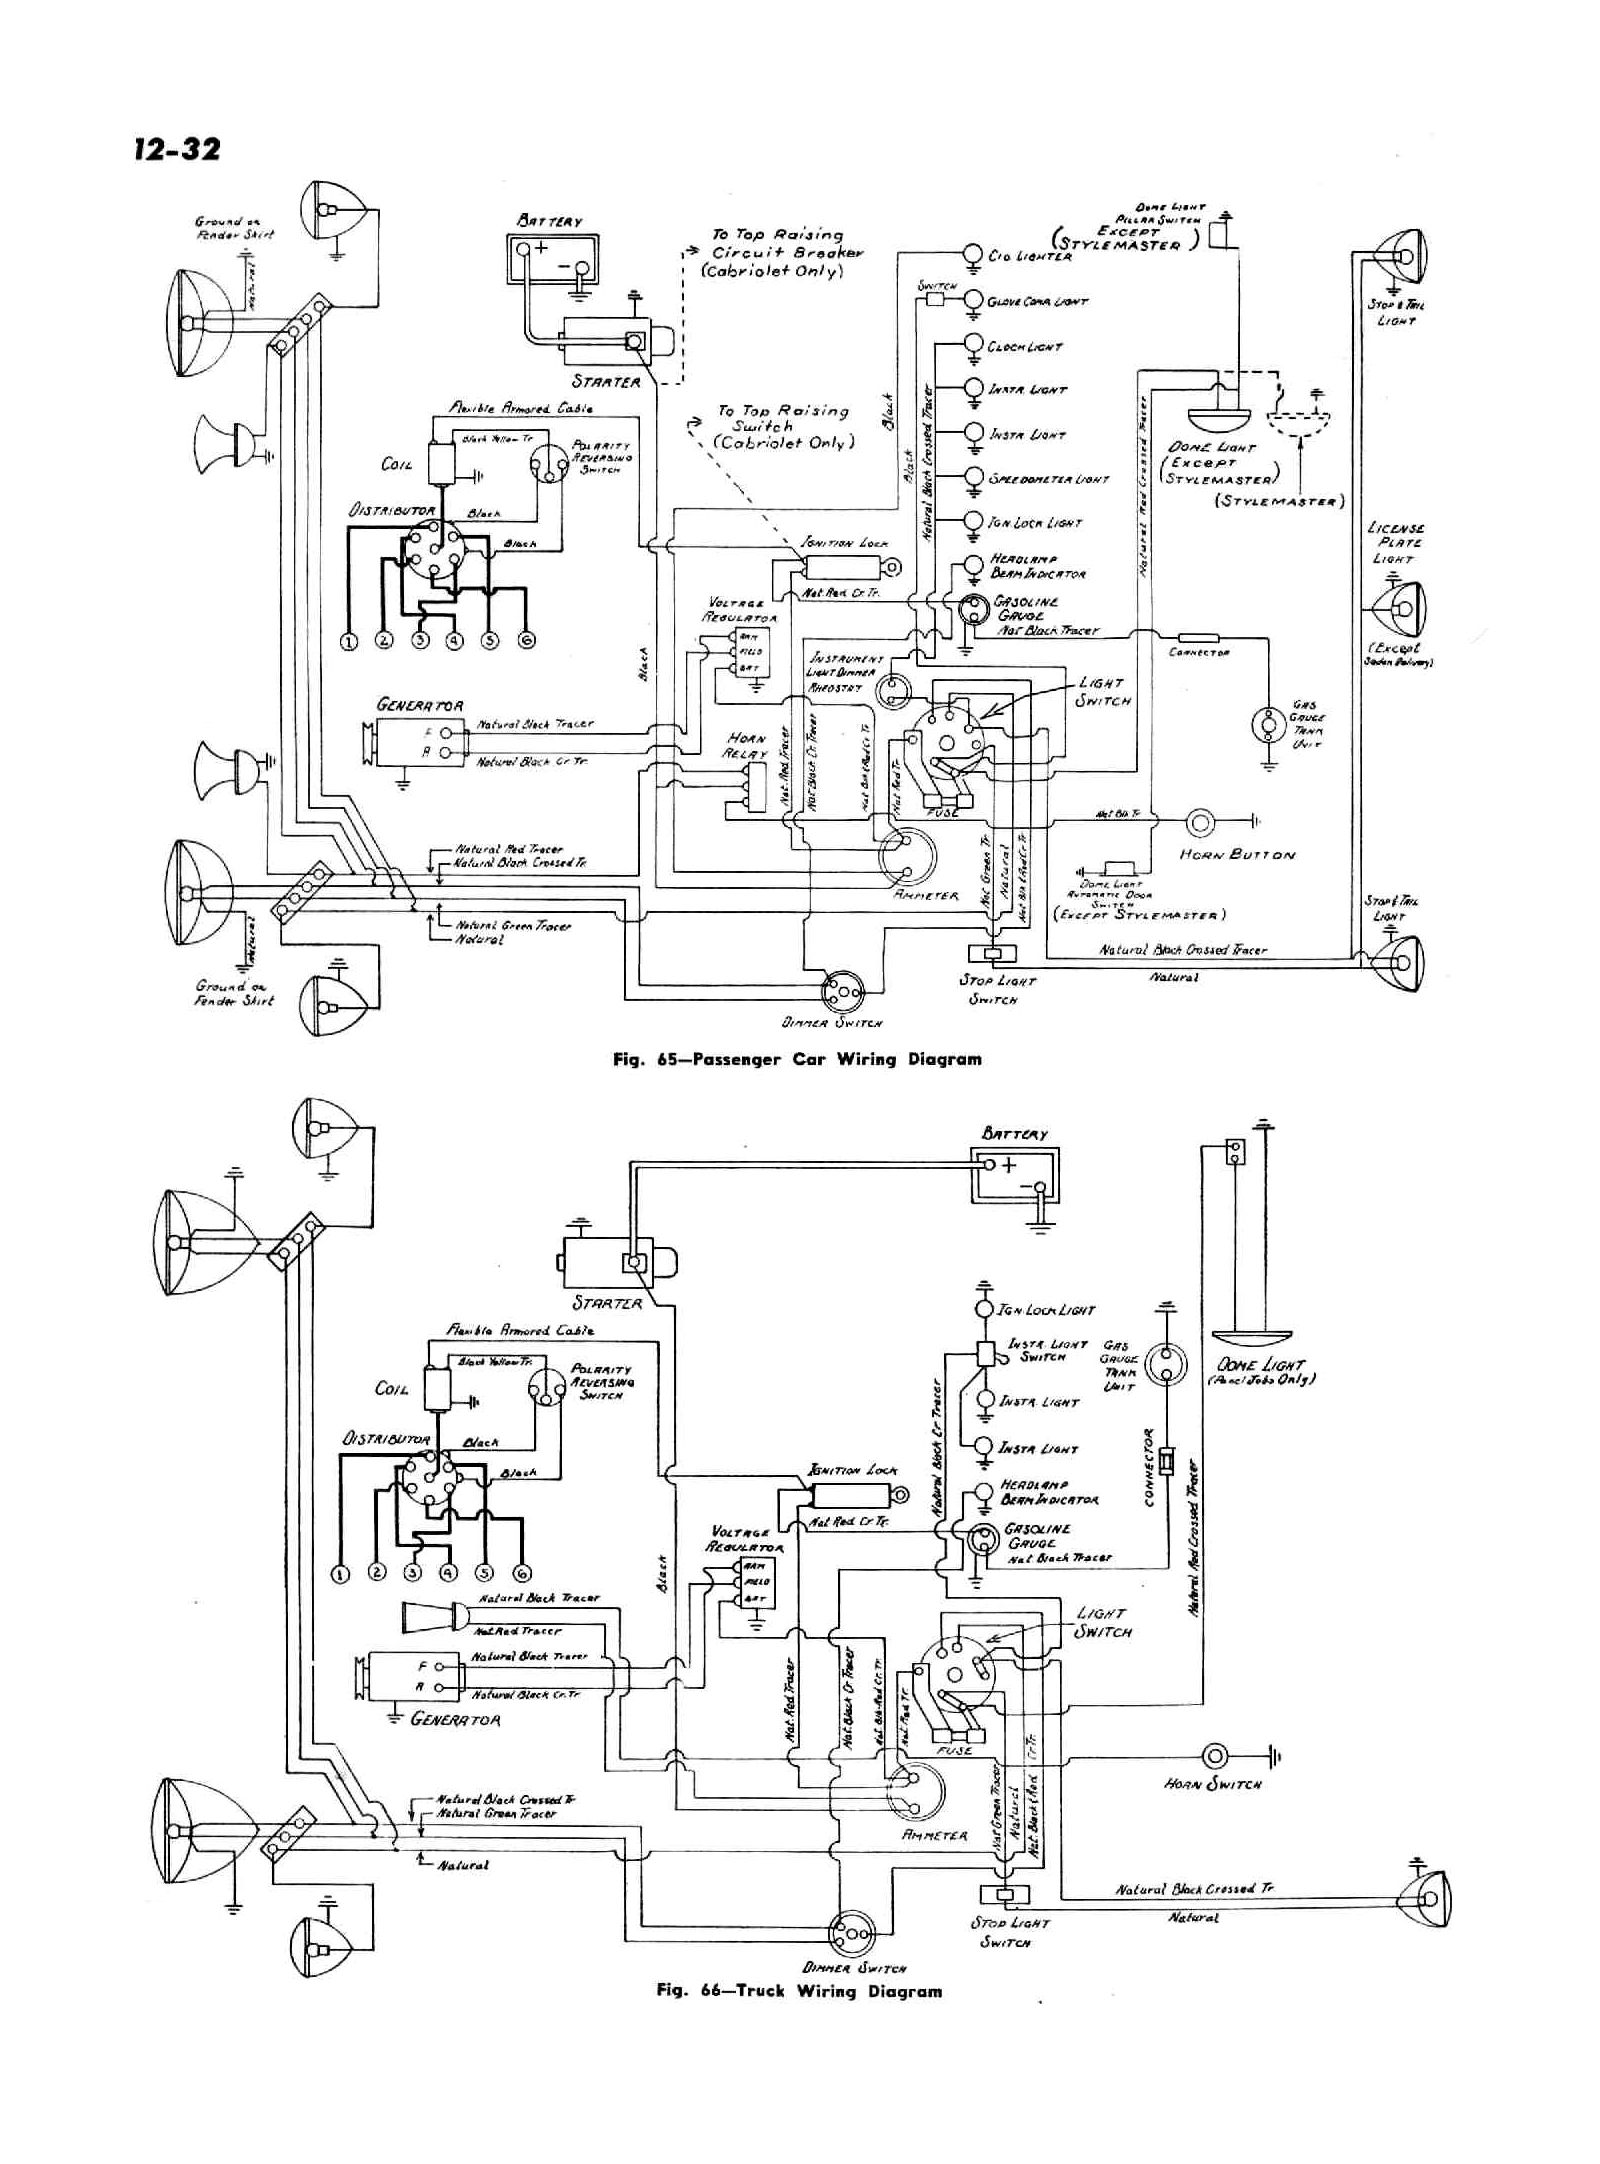 Looking for a wiring schematic for a 1947-48 ONLY of a